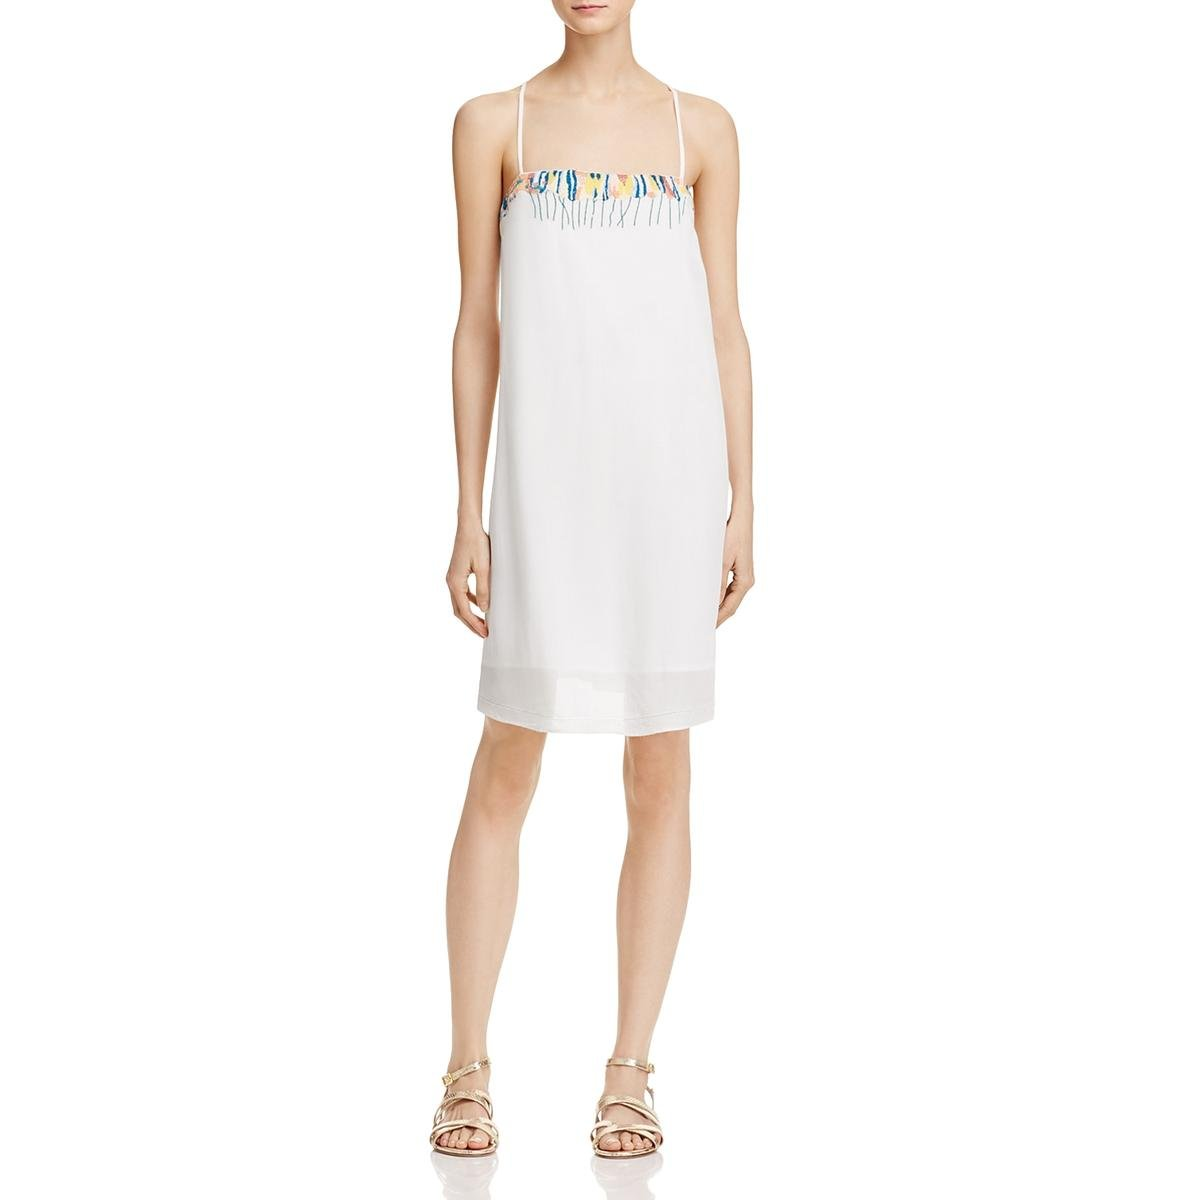 French Connection Women's Melissa Cotton Dress, Summer White/Multi, 6